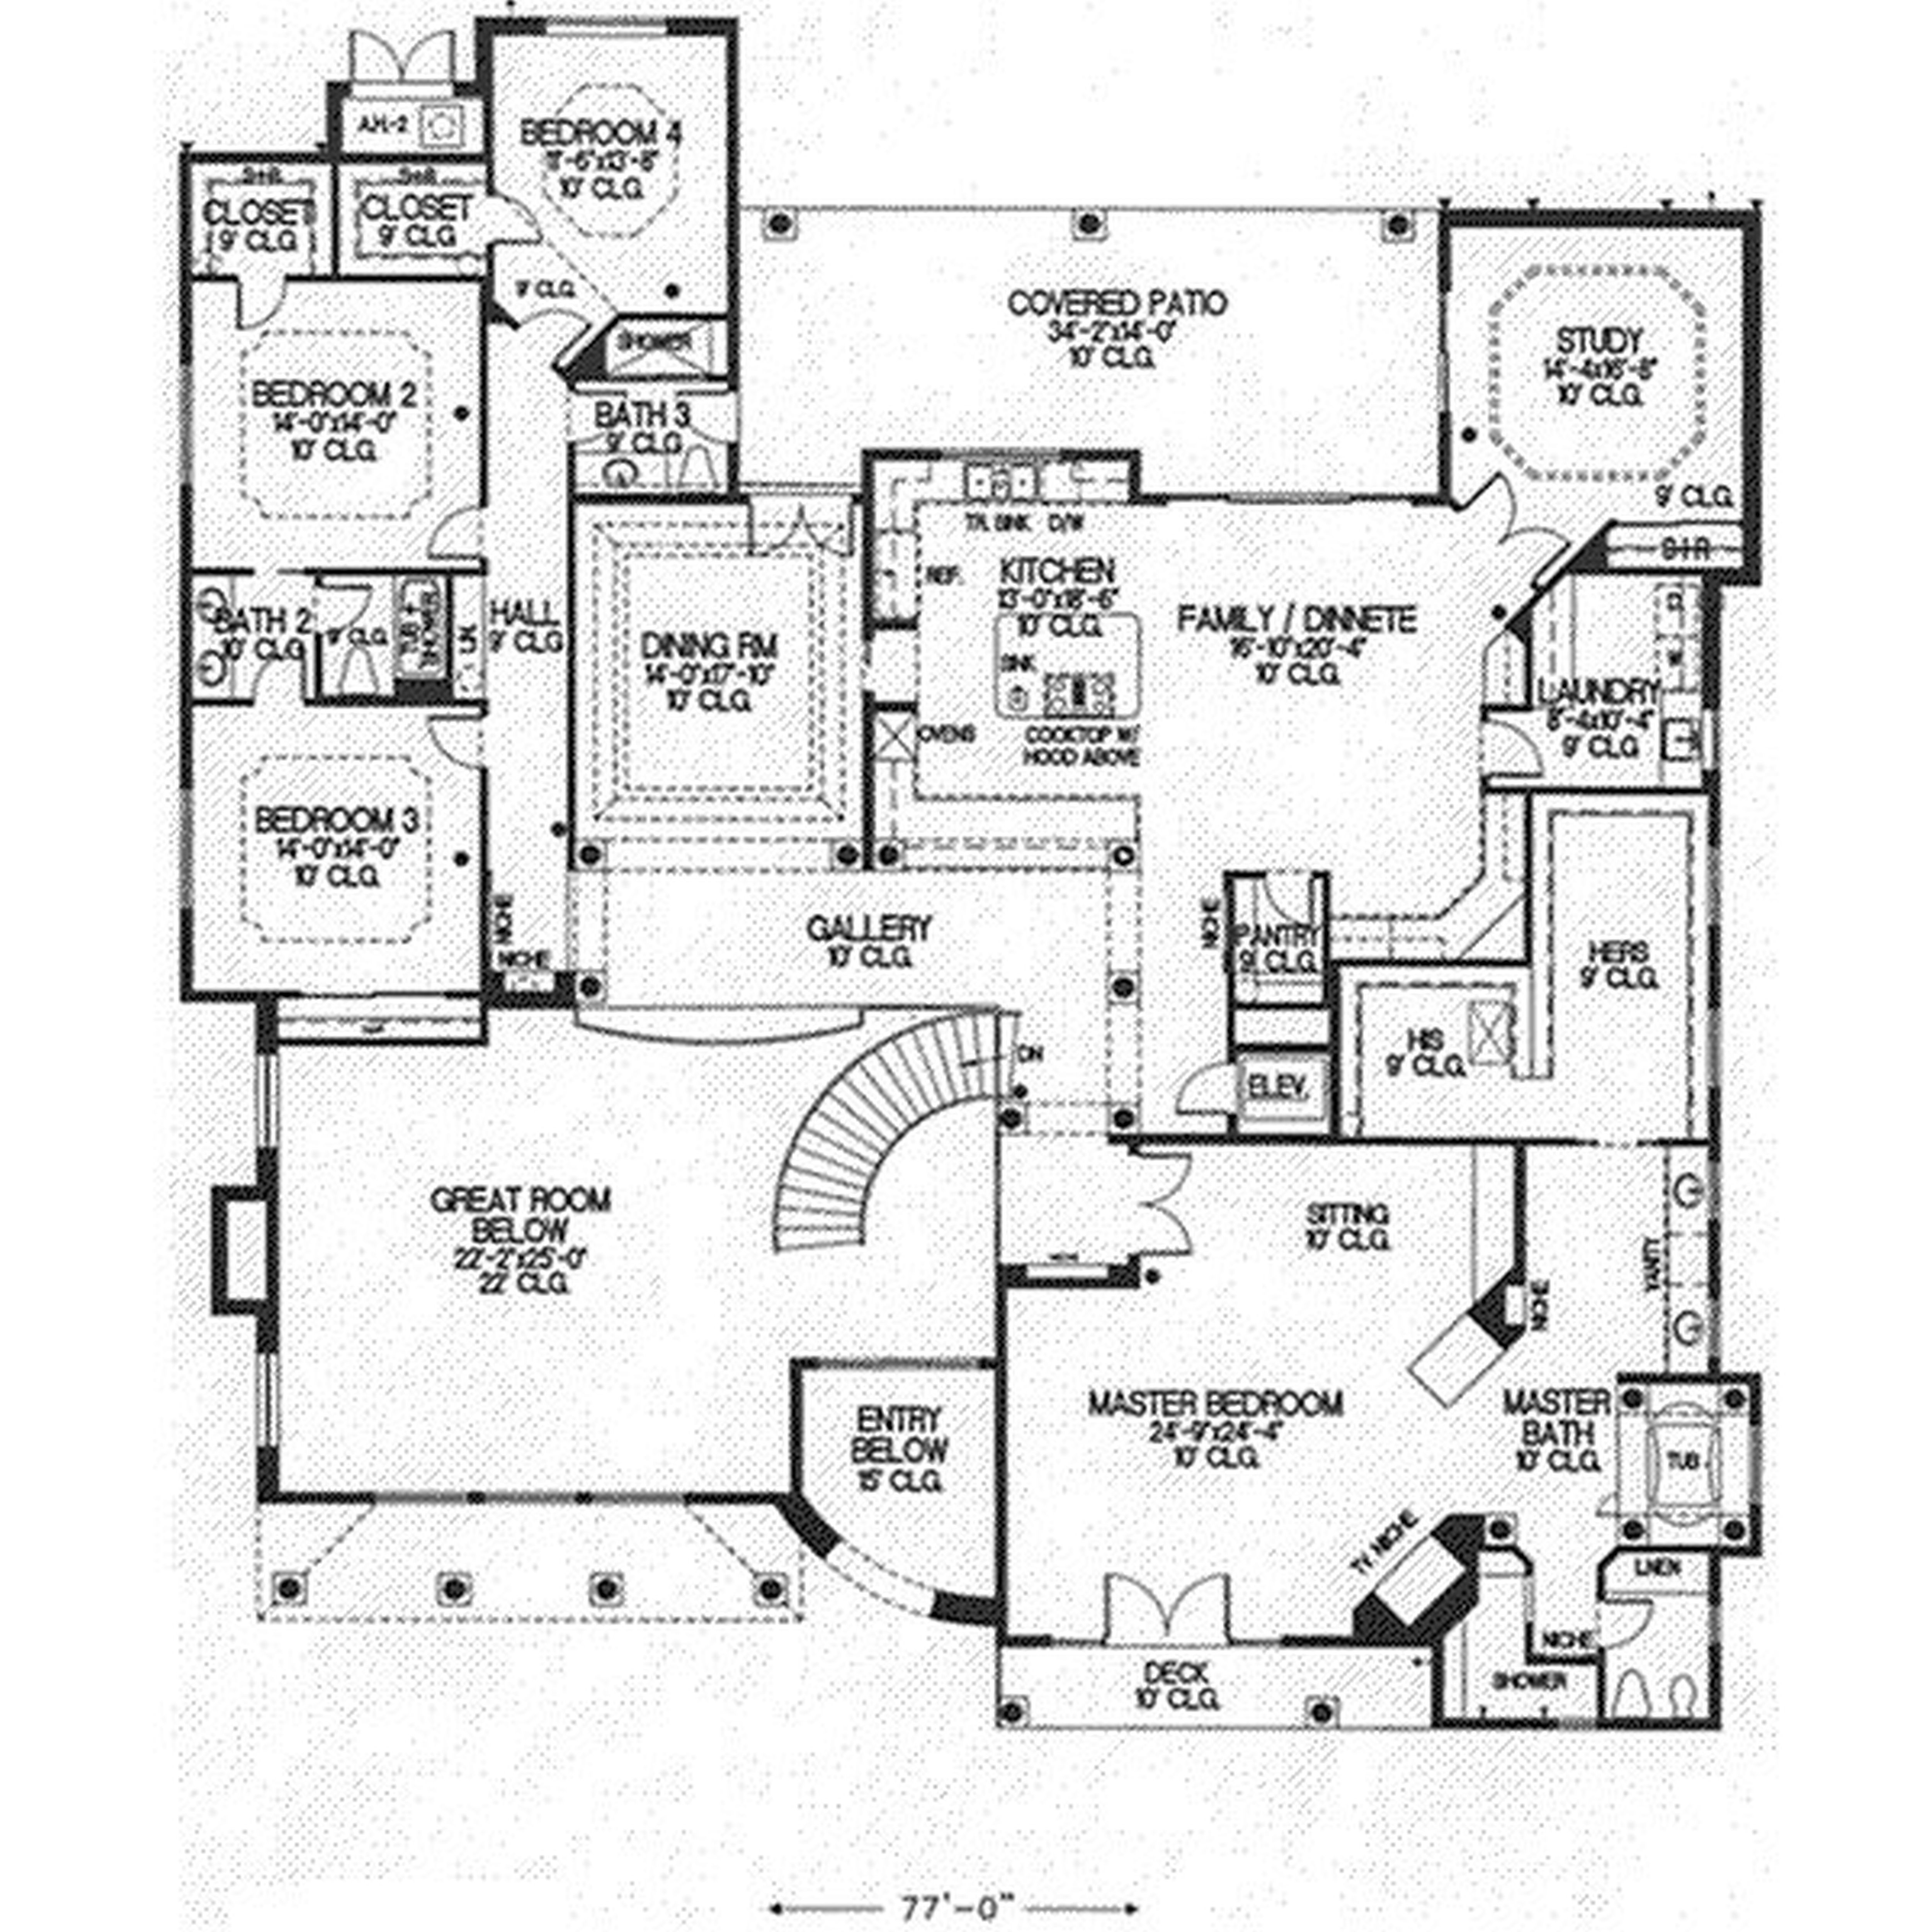 Autocad House Drawing At Free For